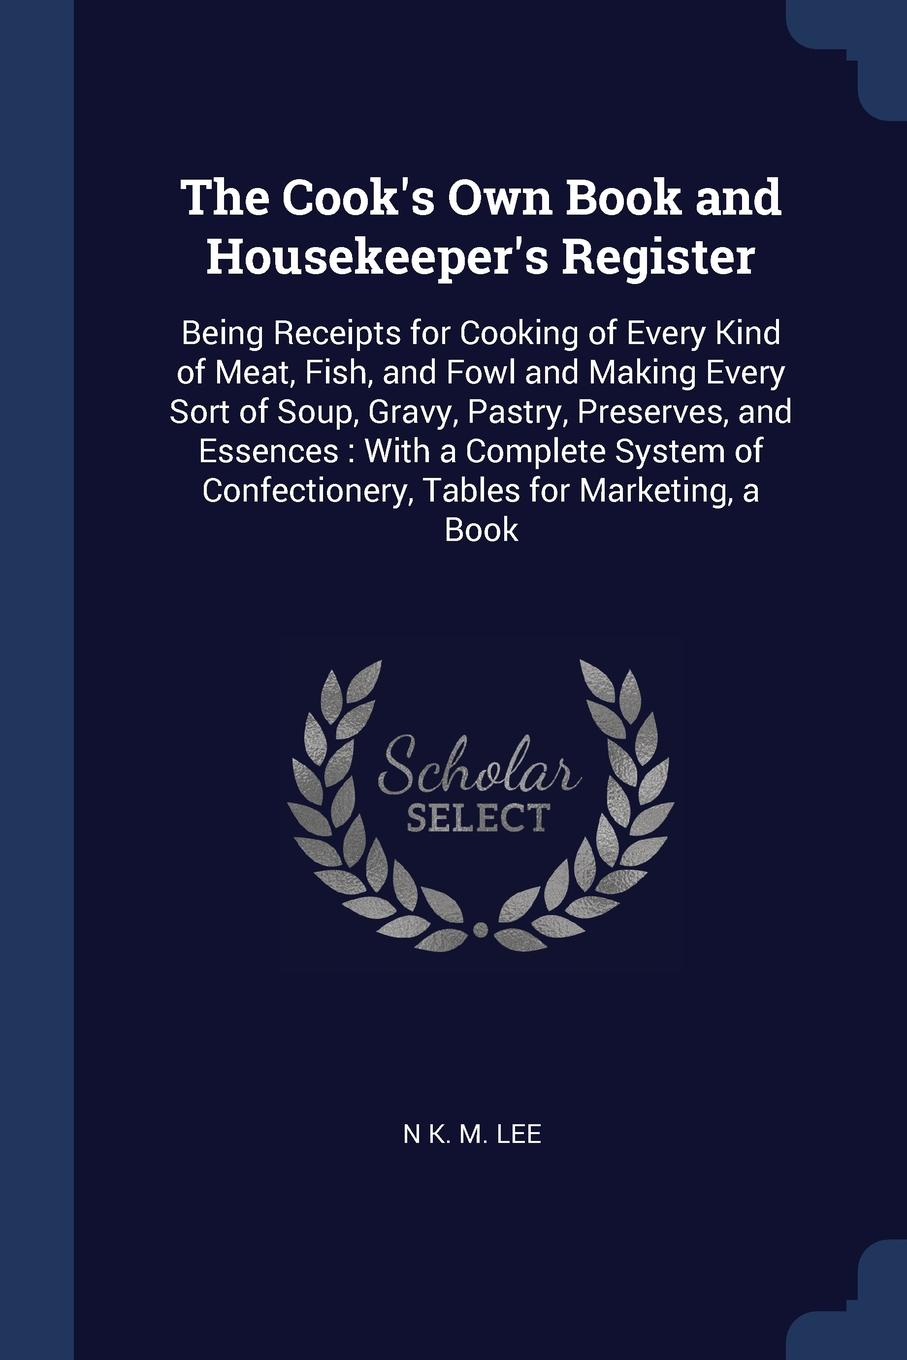 The Cook`s Own Book and Housekeeper`s Register. Being Receipts for Cooking of Every Kind of Meat, Fish, and Fowl and Making Every Sort of Soup, Gravy, Pastry, Preserves, and Essences : With a Complete System of Confectionery, Tables for Marketing,...